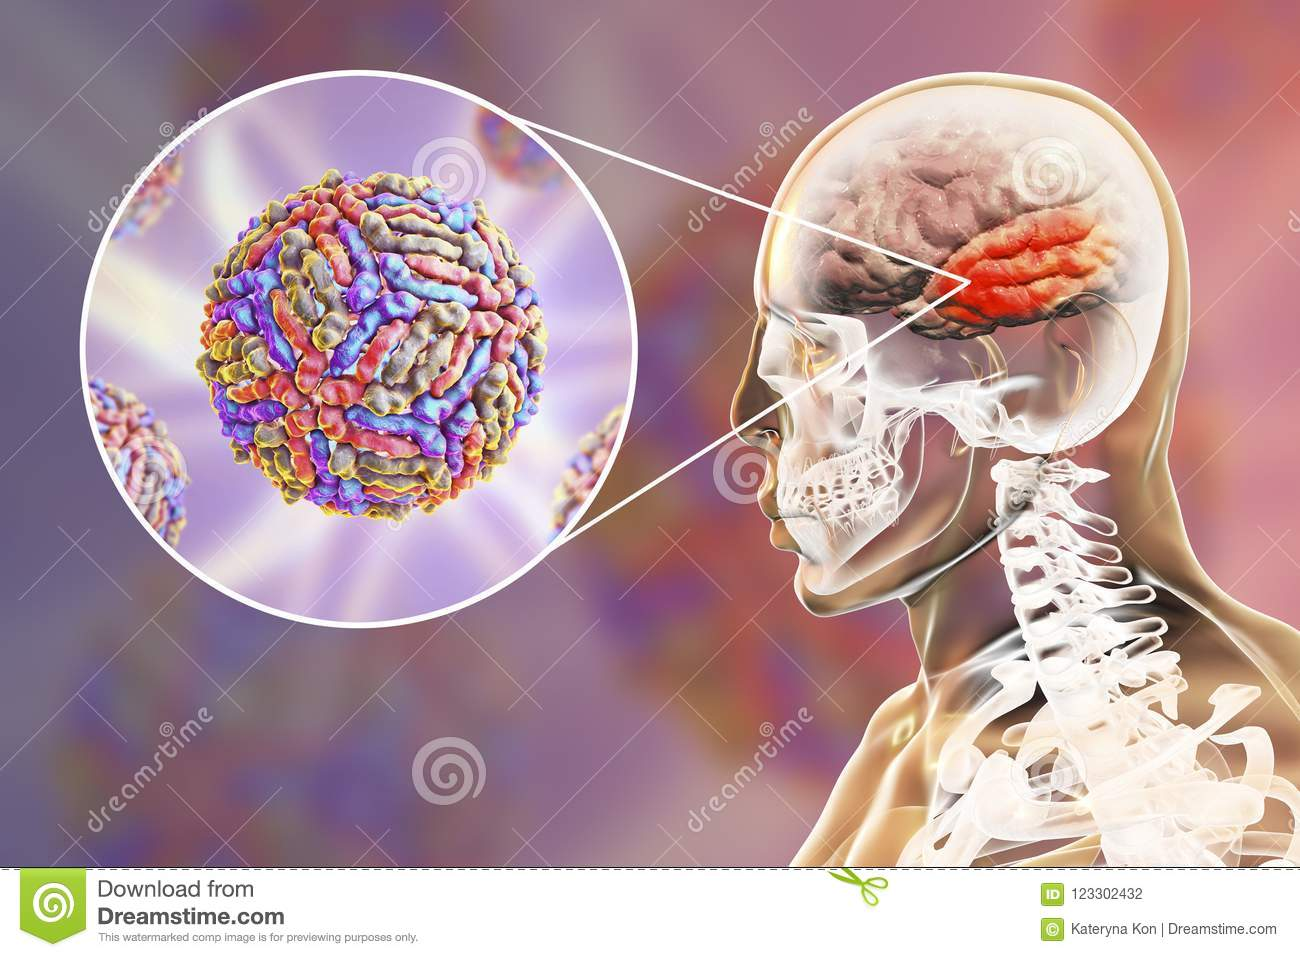 west nile virus encephalitis stock illustration illustration of